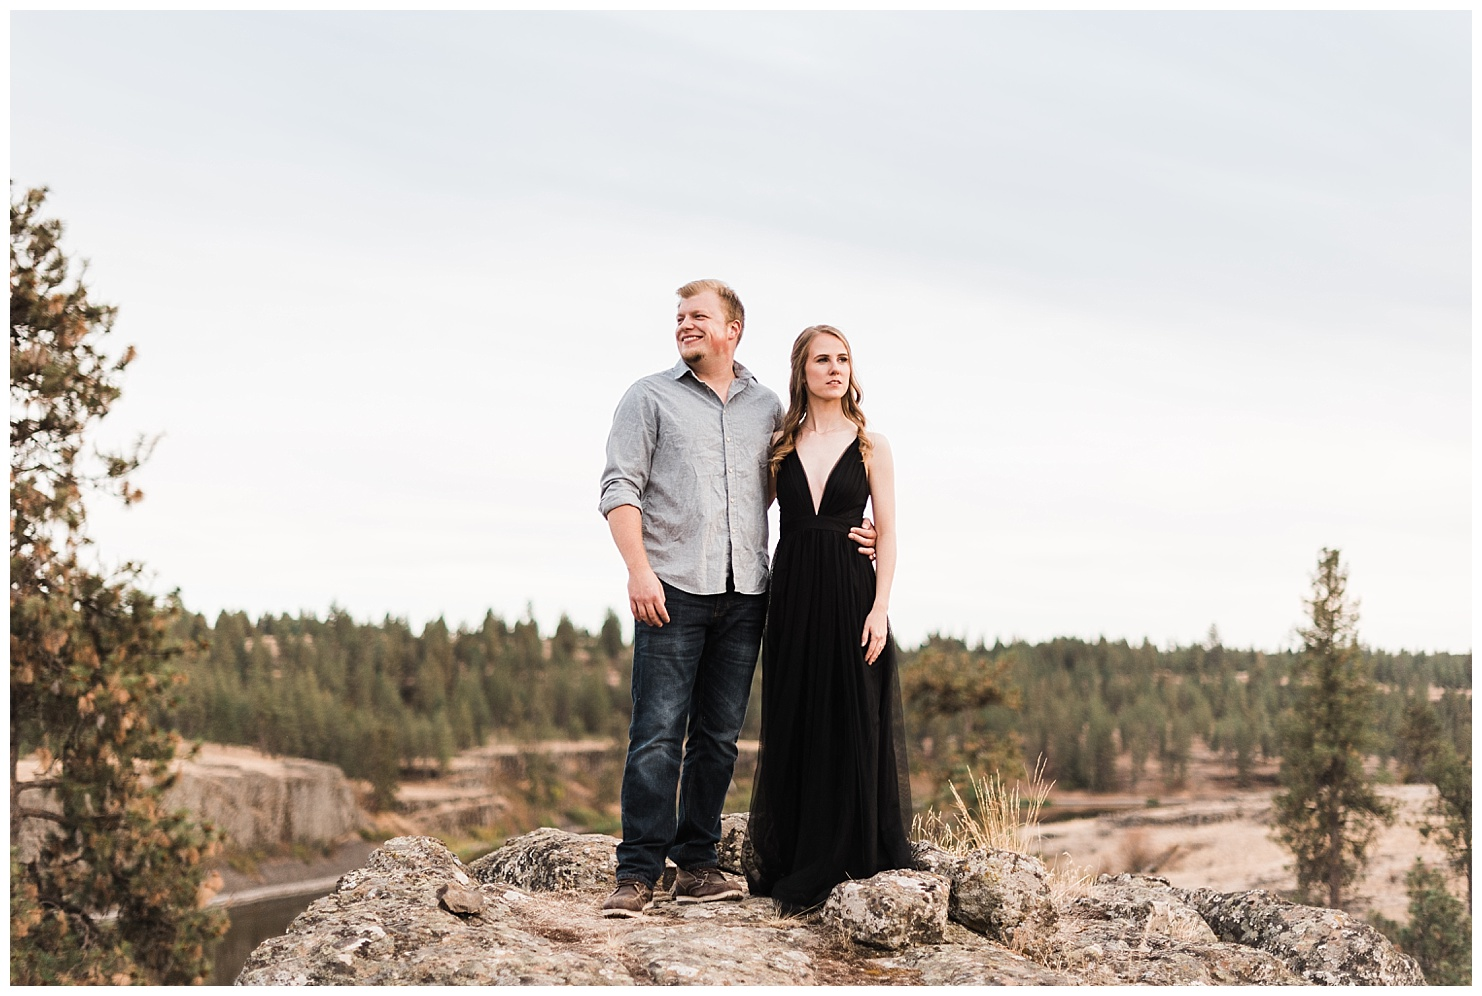 Hog Lake Engagement session by Spokane Wedding Photographers Forthright Photo